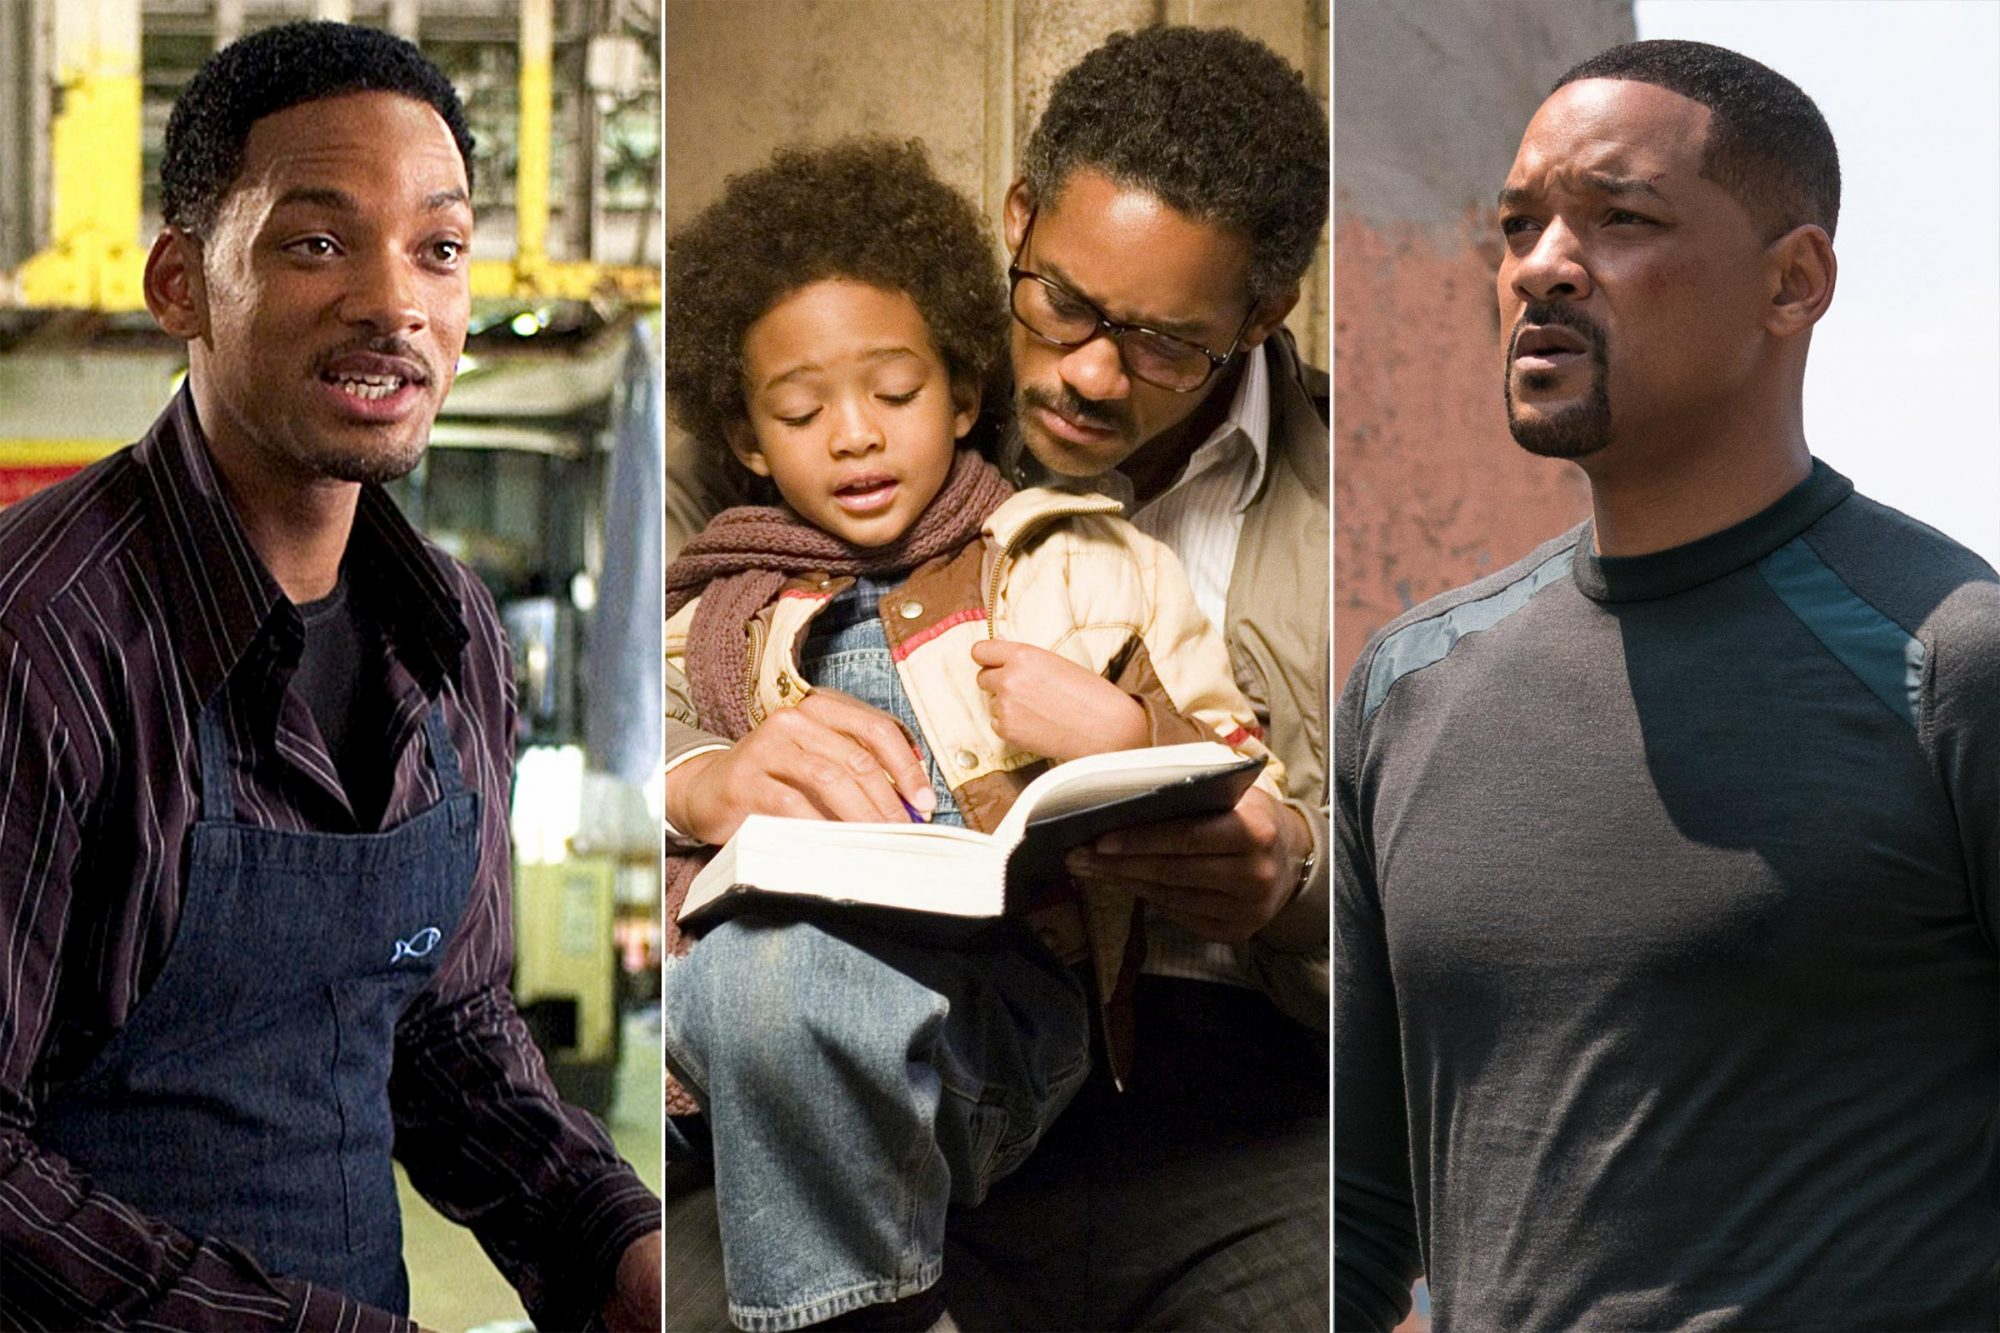 HITCH, The Pursuit of Happyness, BAD BOYS FOR LIFE